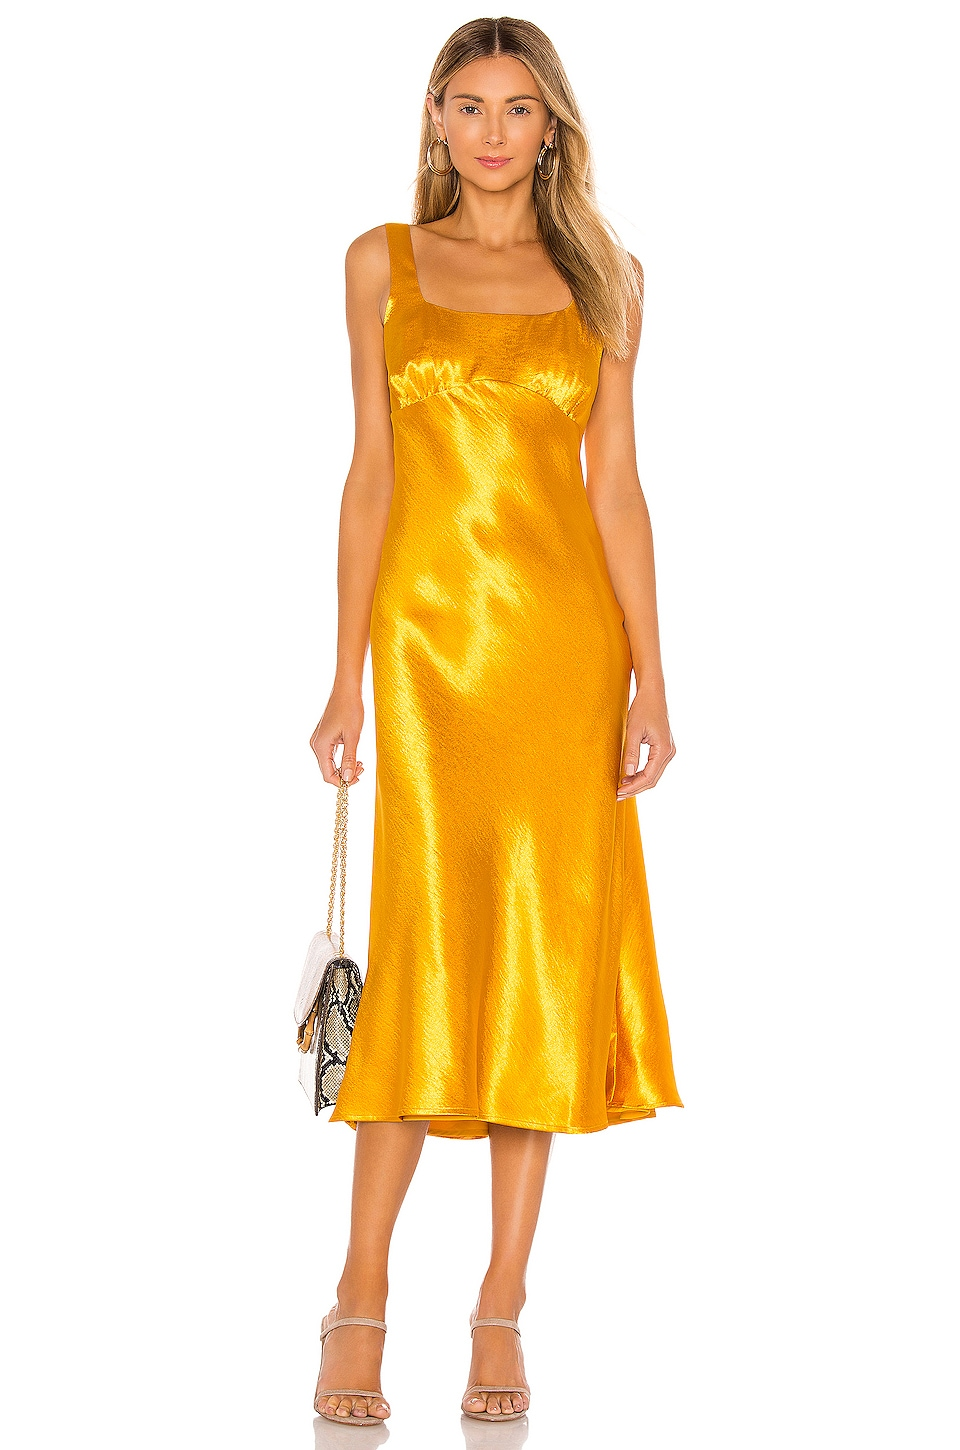 House of Harlow 1960 x REVOLVE Dorienne Midi Dress in Yellow Gold